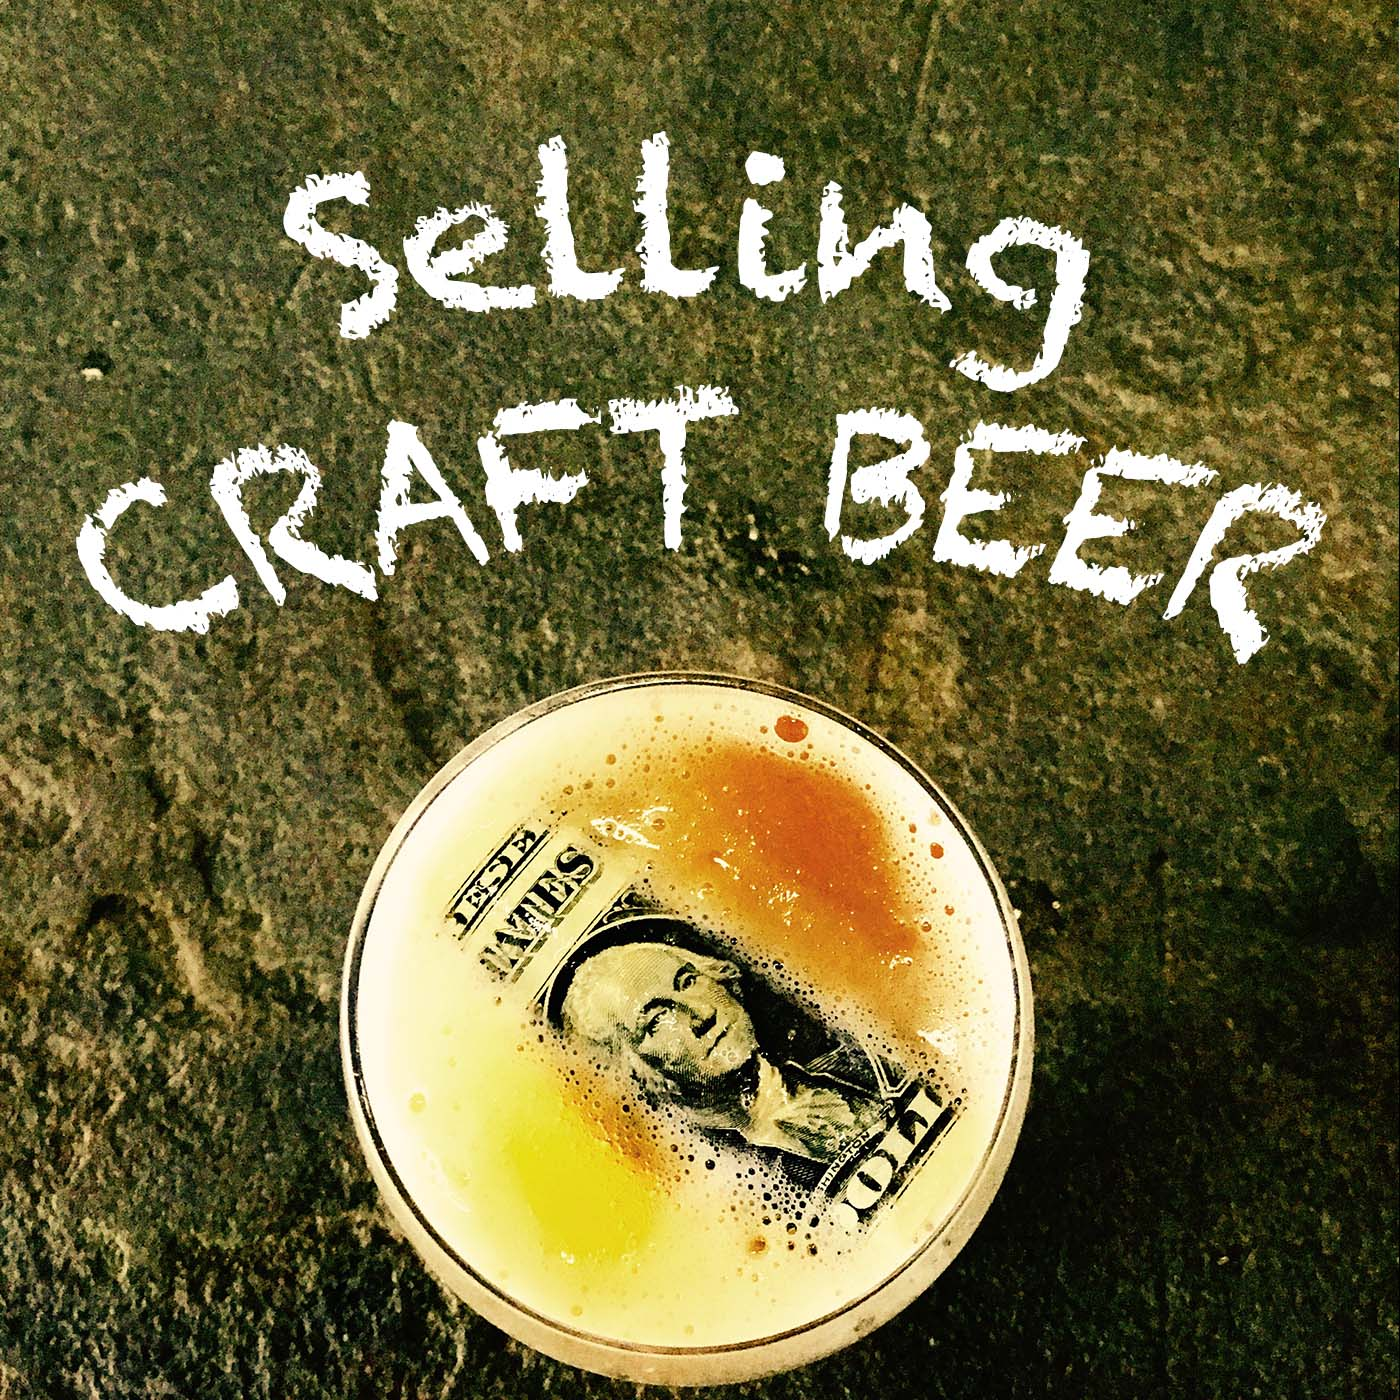 Selling Craft Beer show art